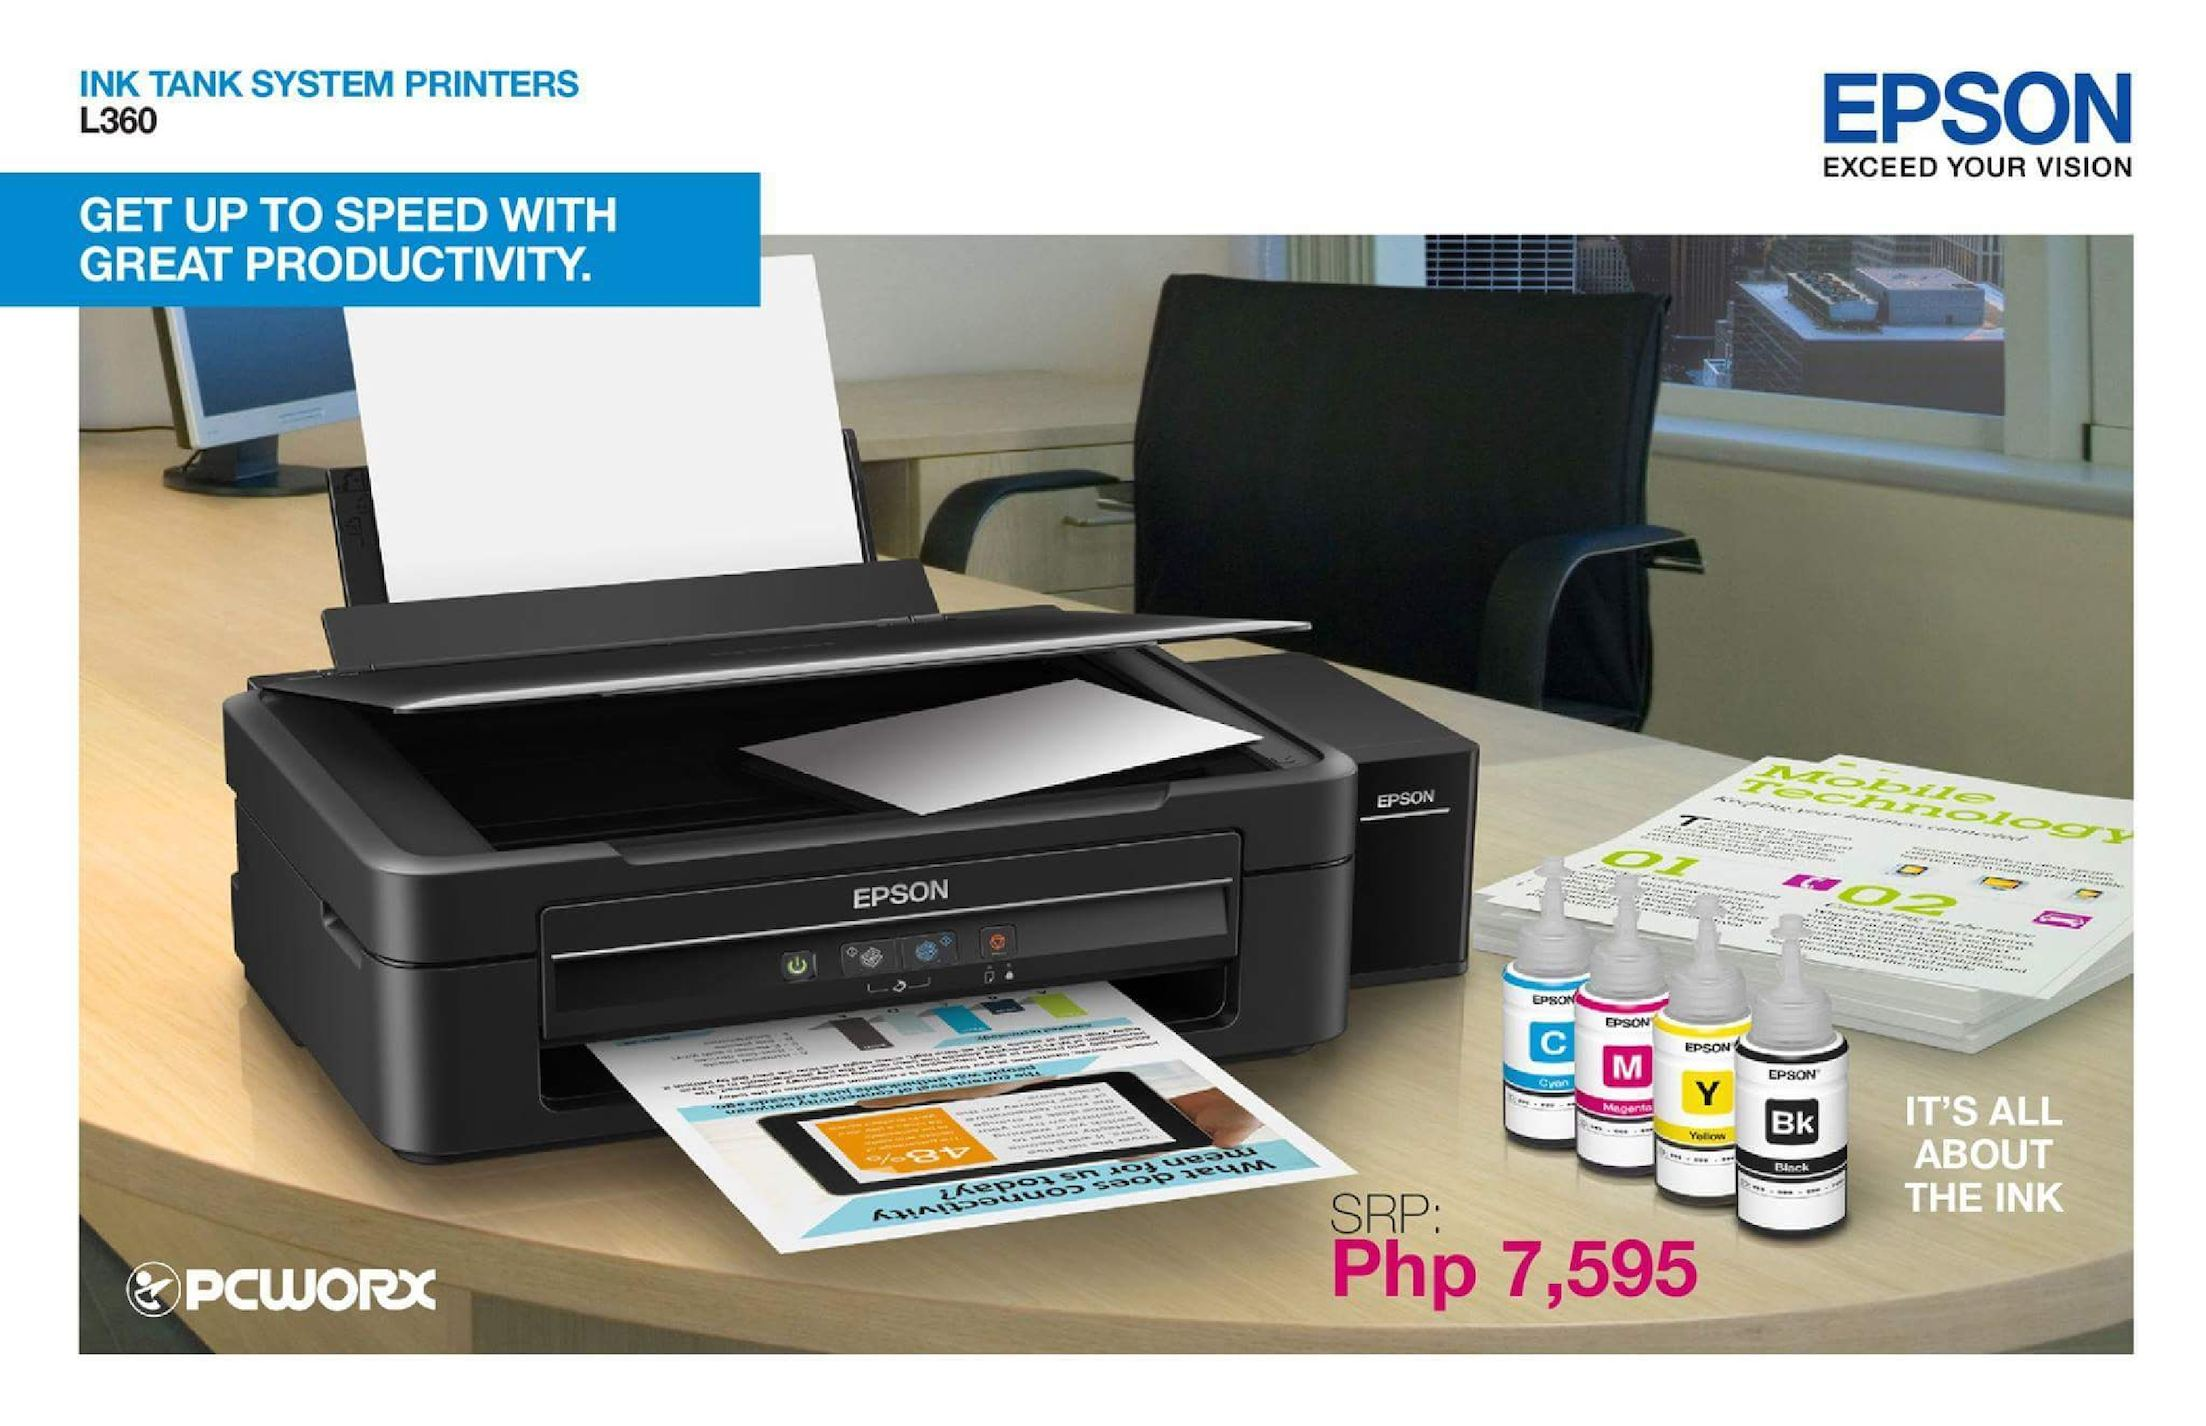 Calamo Get Up To Speed With Great Productivity Using Epson L360 Printer L 360 For Only P7595 From Pcworx 90032